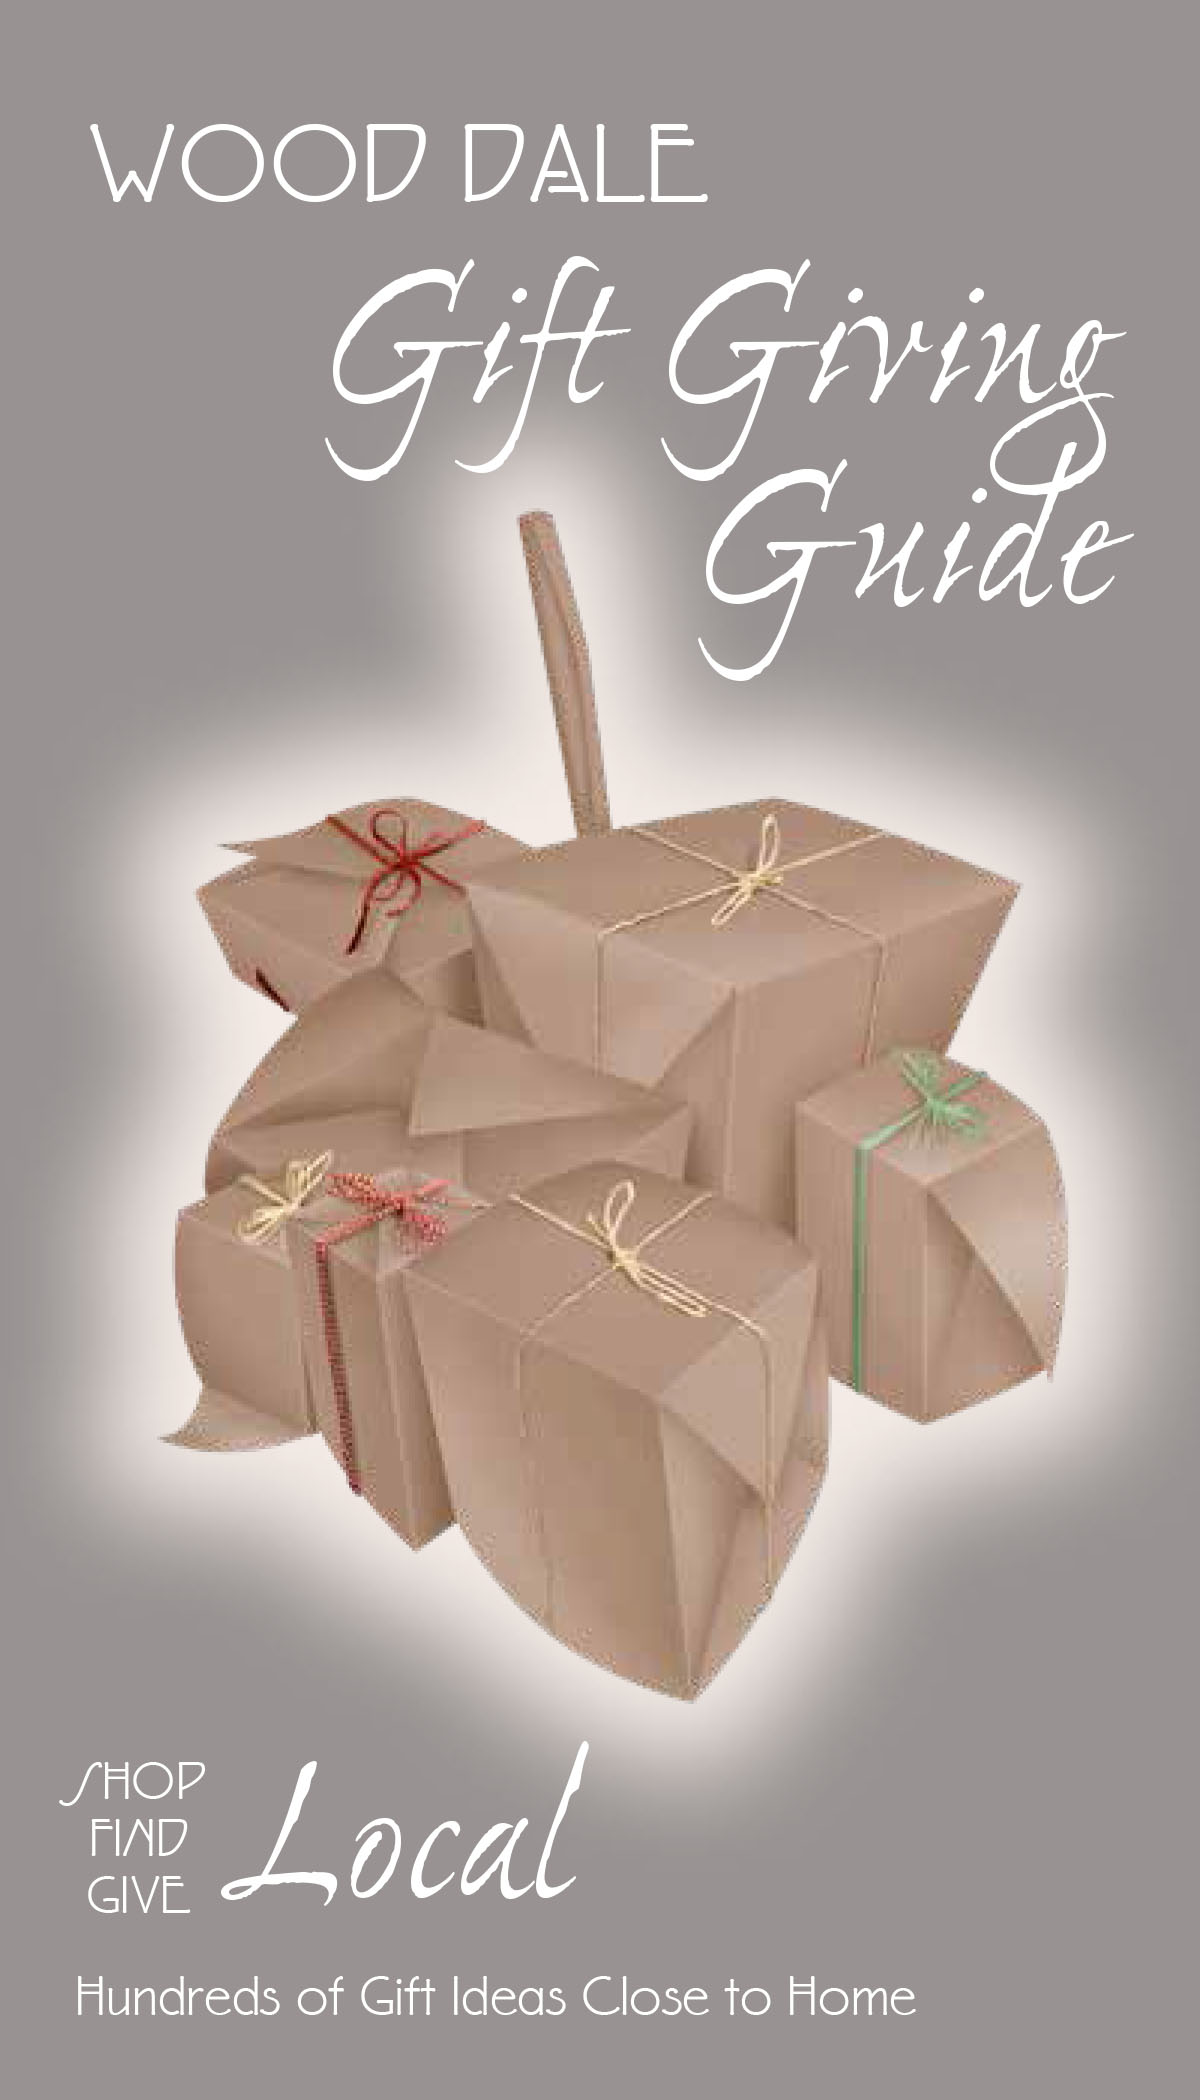 Wood Dale Gift Giving Guide - Cover